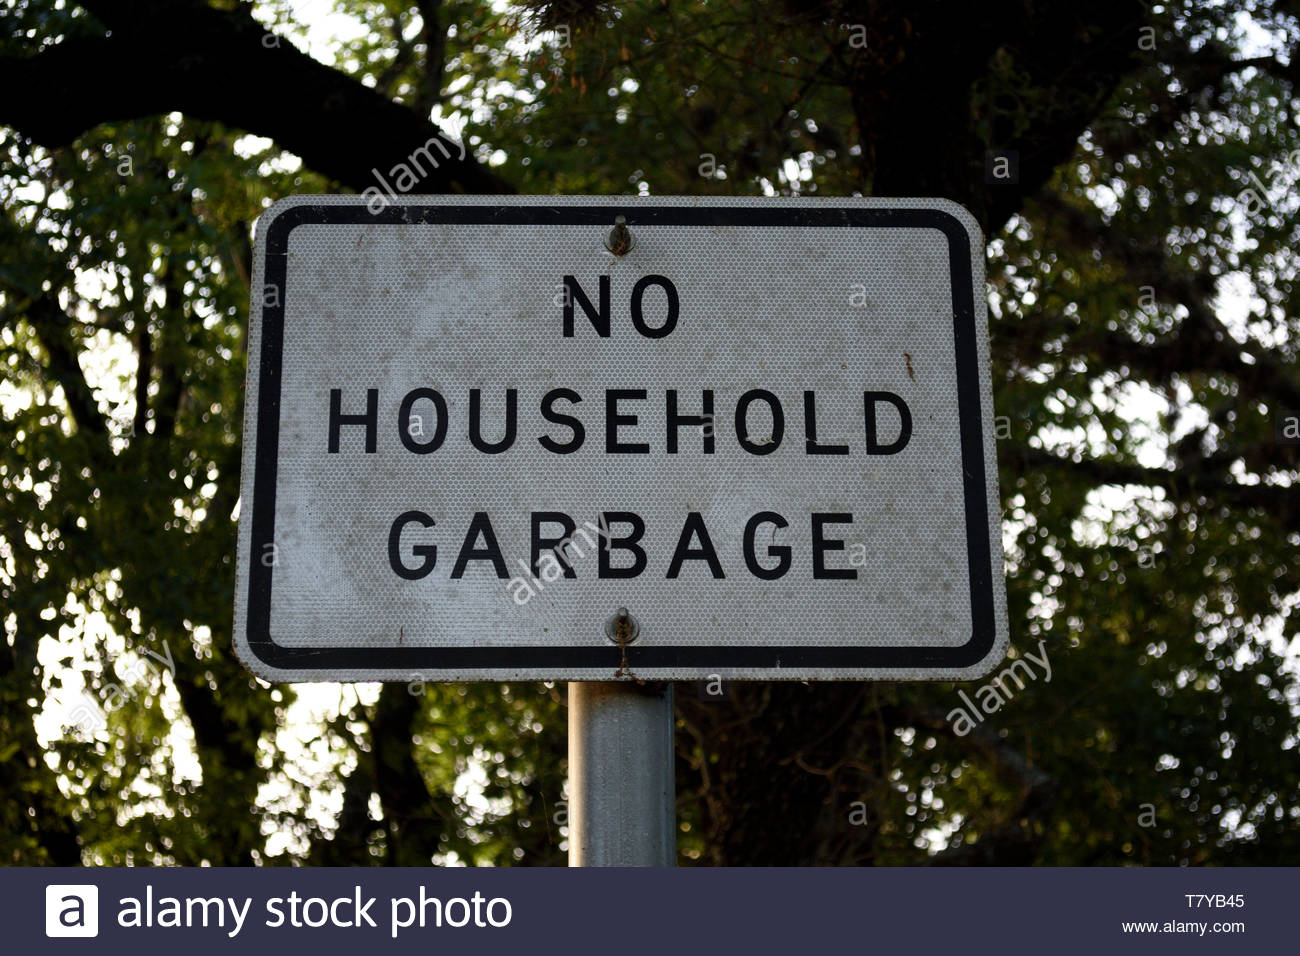 No Household Garbage. No Household Garbage Sign. Sign No Household Garbage. Household Garbage. No dumping household garbage. Sign with tree in Texas. - Stock Image